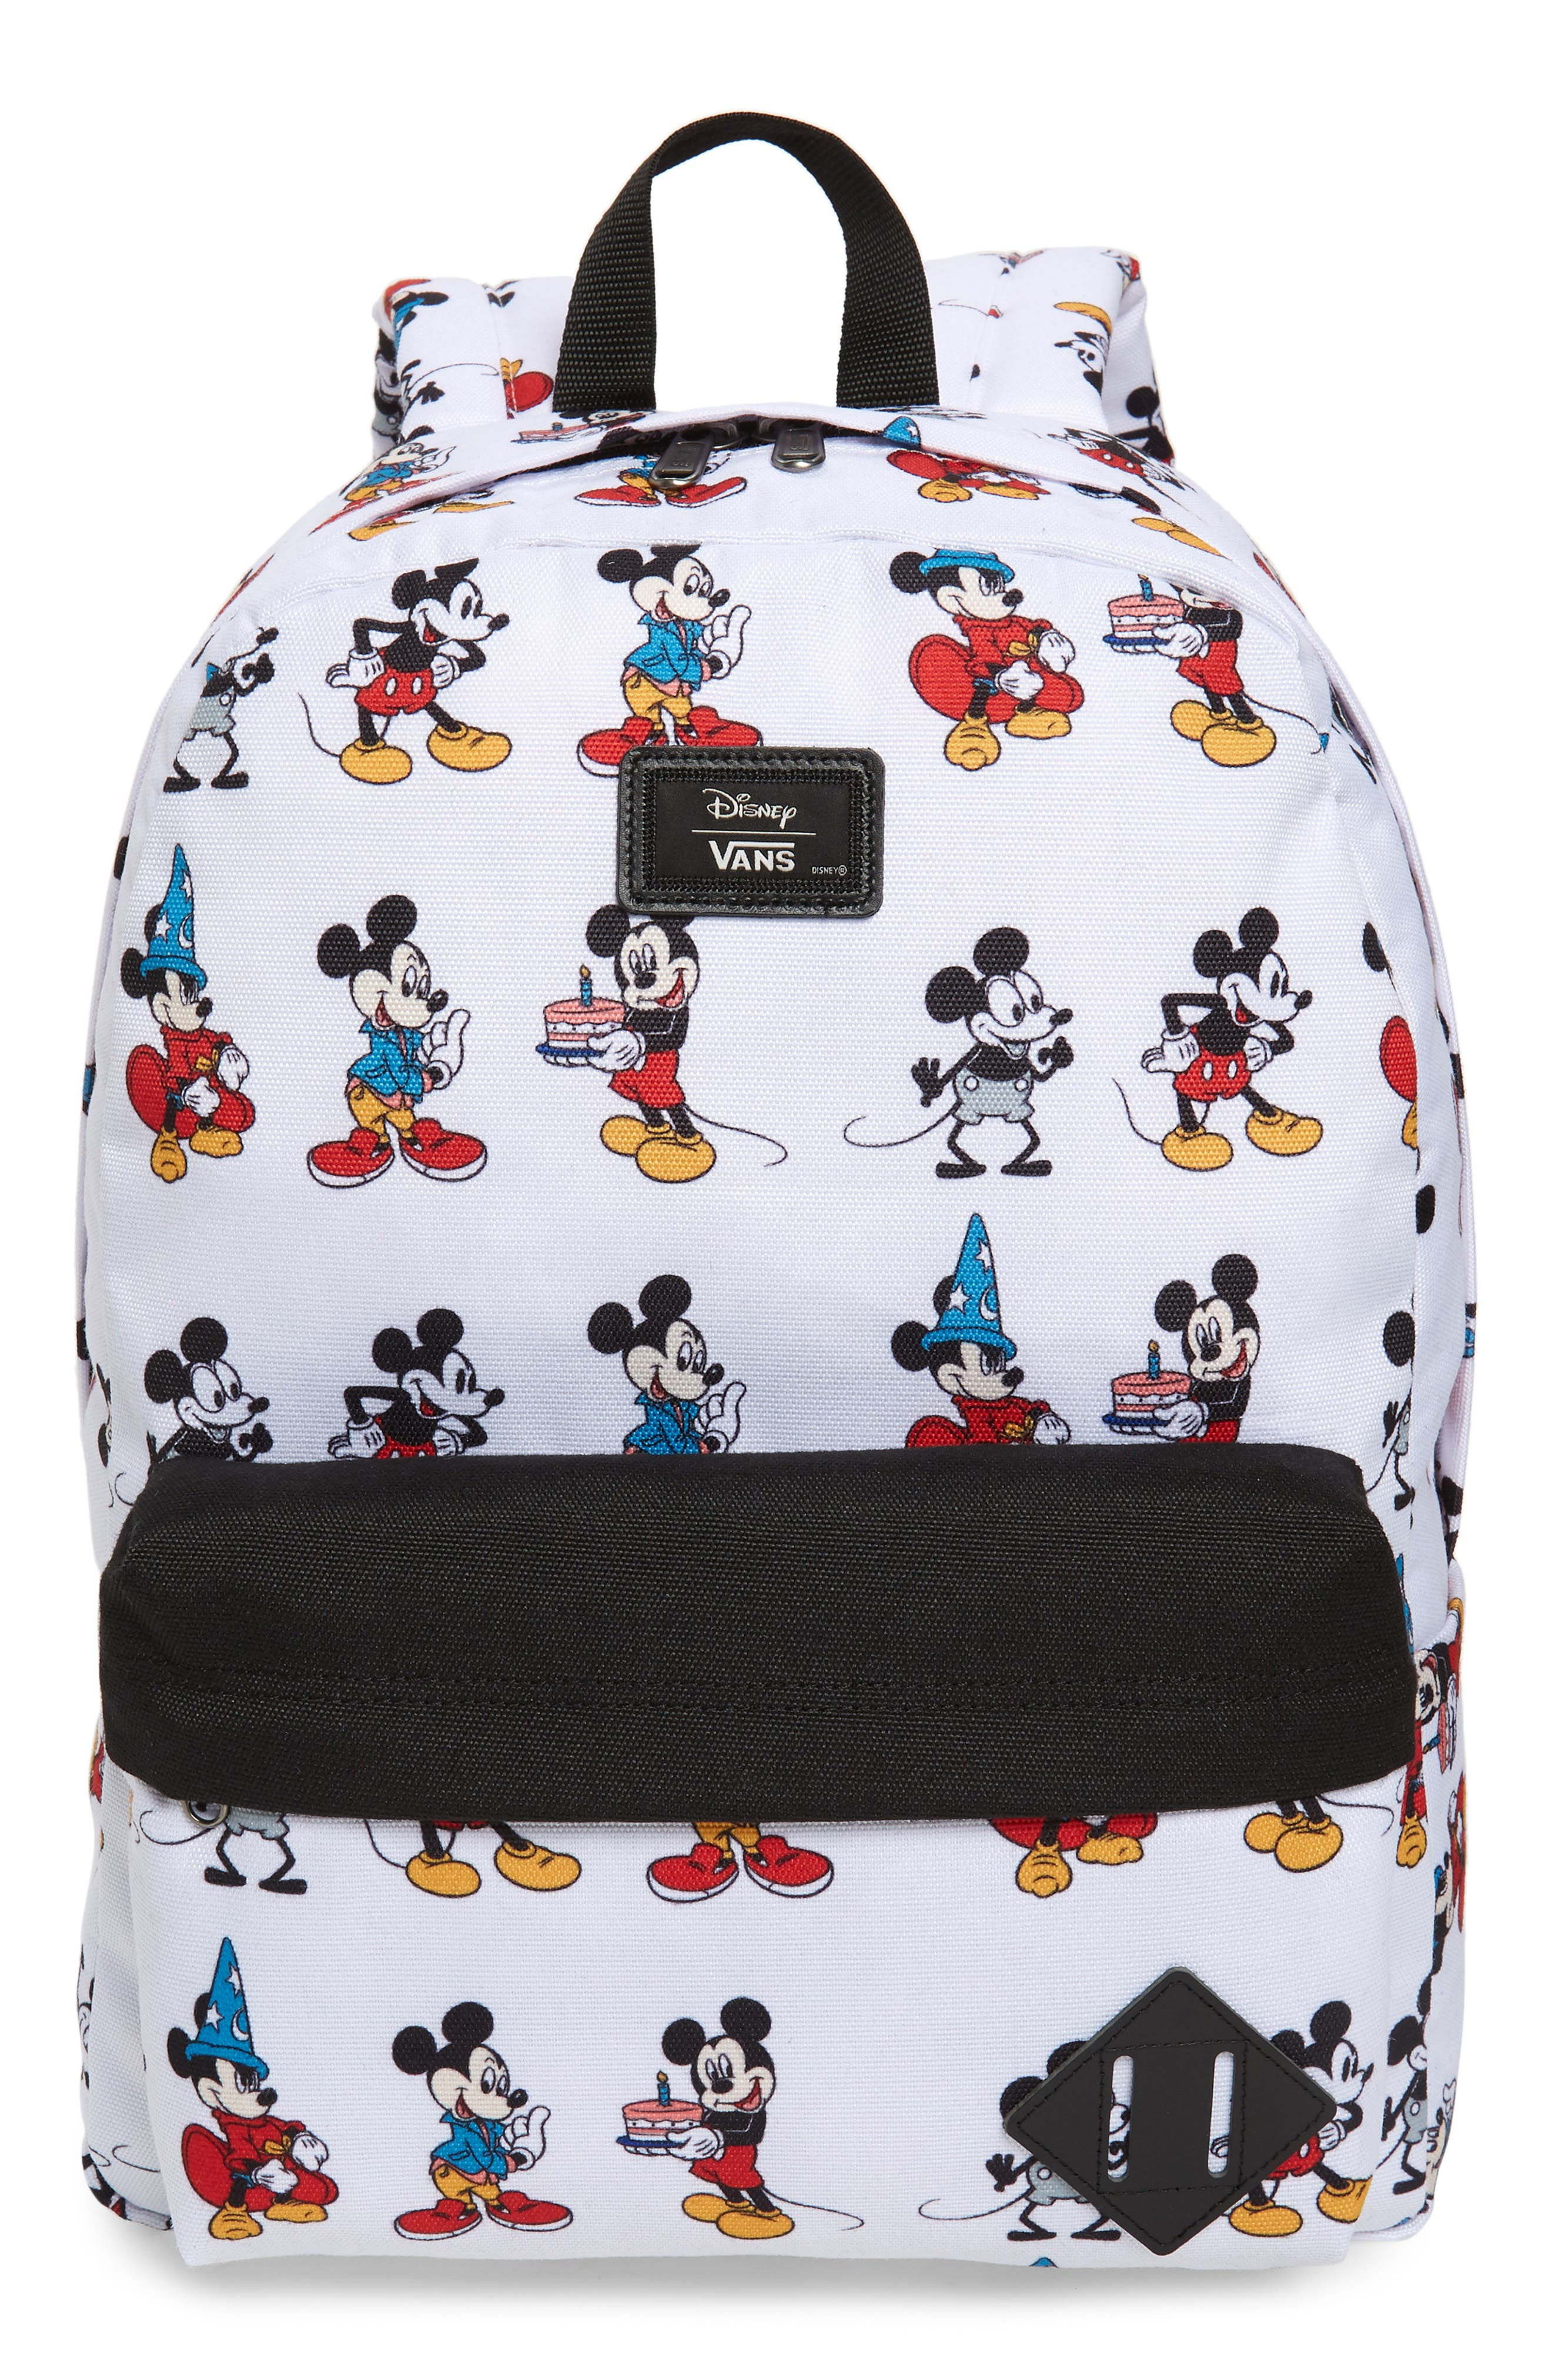 x Disney Mickey's 90th Anniversary - Mickey Through the Ages Backpack,                         Main,                         color, WHITE